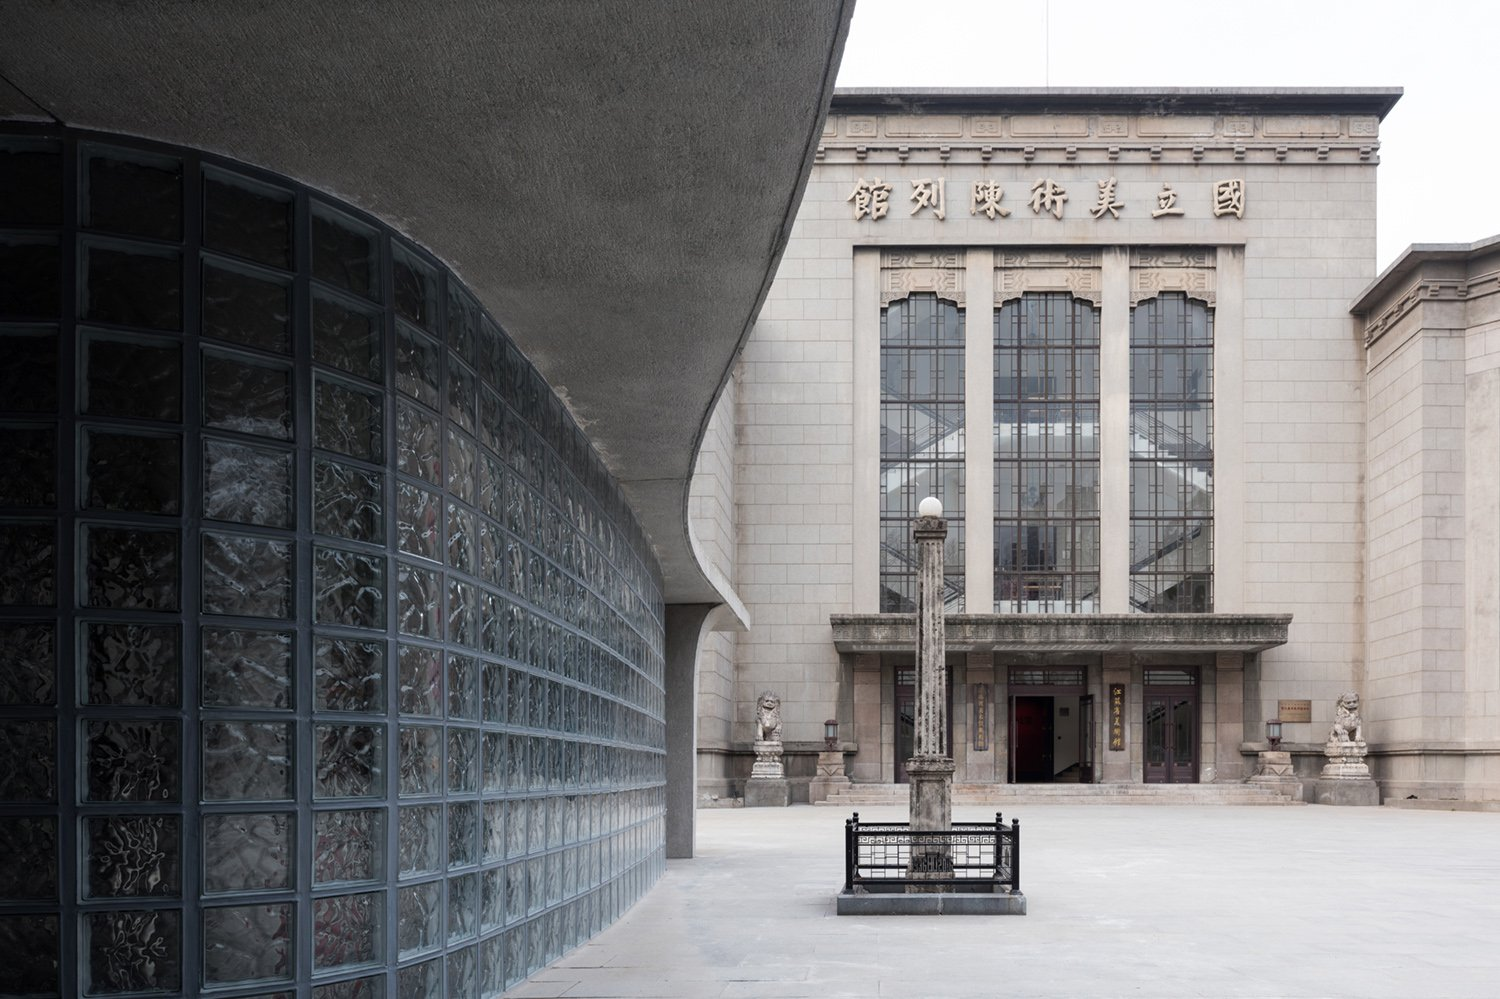 the mail hall and the pavilion Hao CHEN